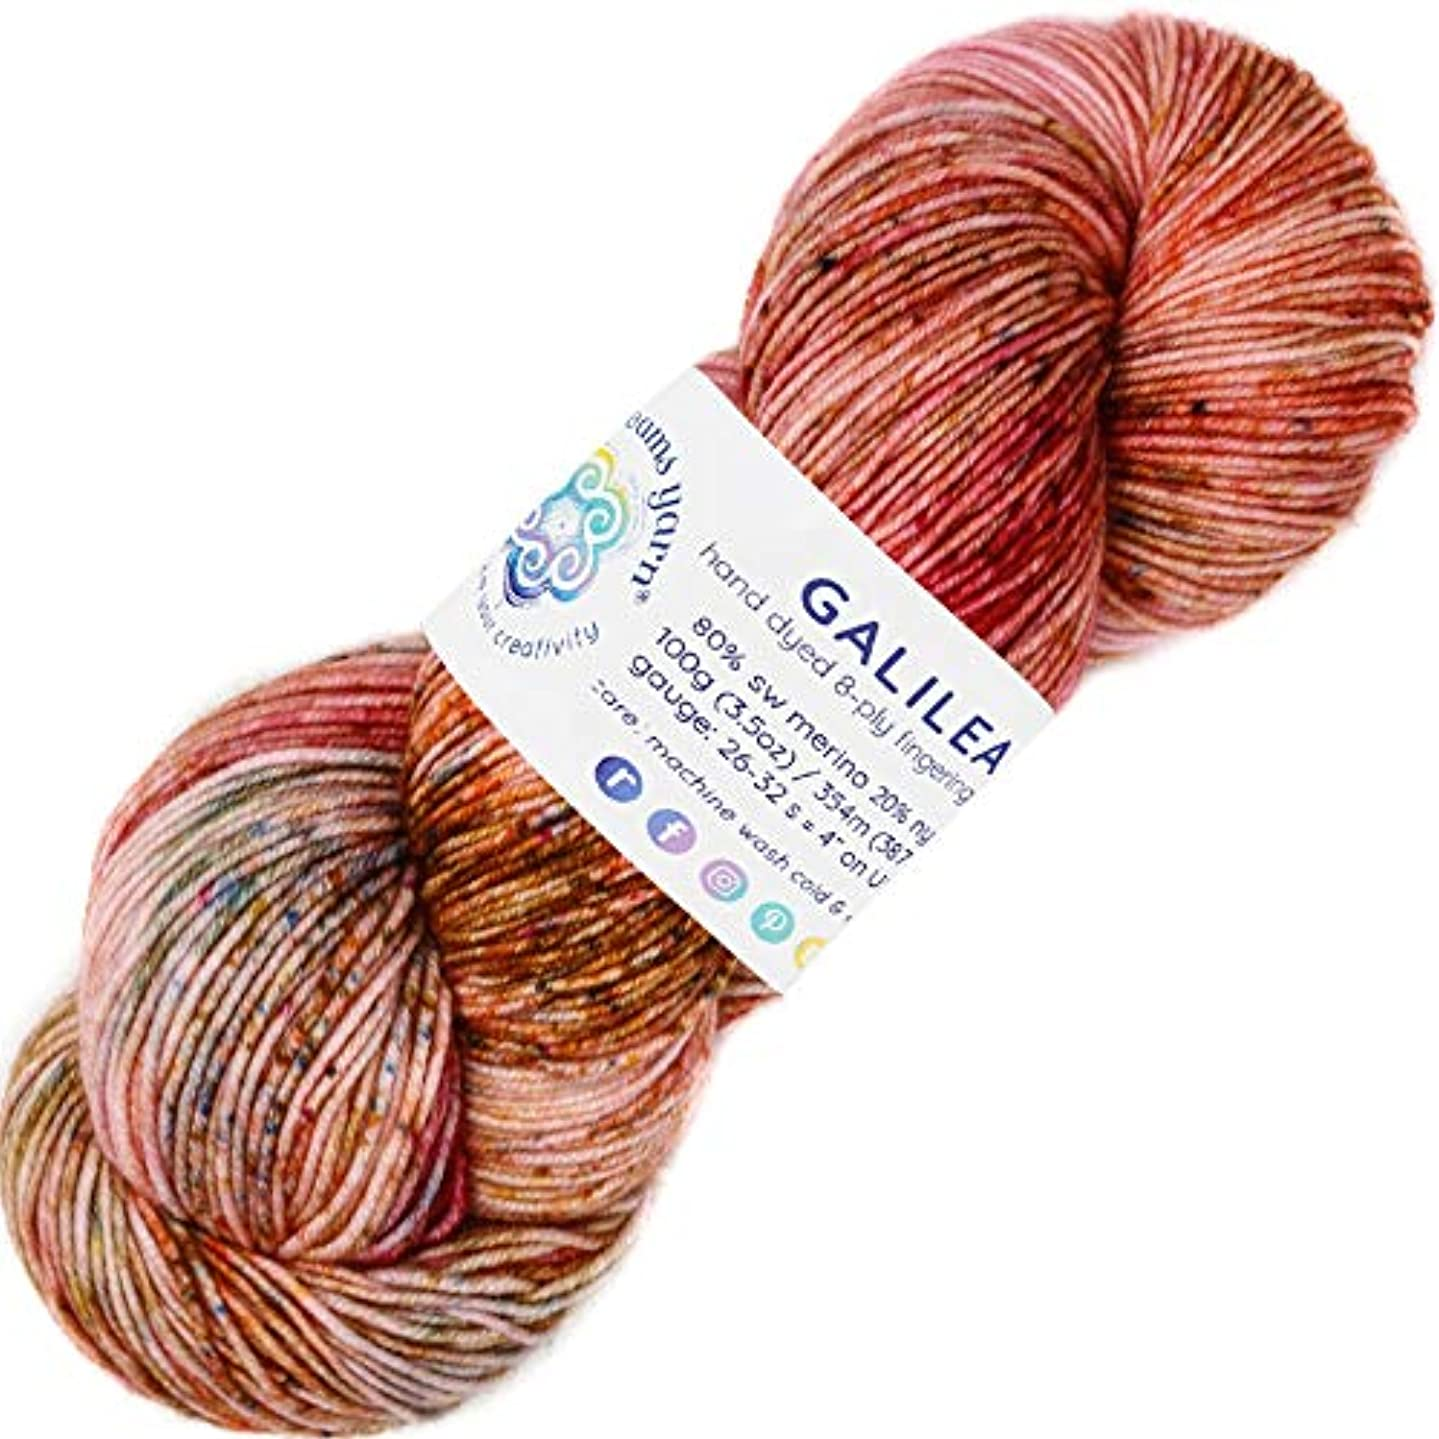 Living Dreams Yarn Galilea. Colorful Superwash Merino Sock Yarn. Super Soft and Strong. Hand Dyed to Perfection: Supernova